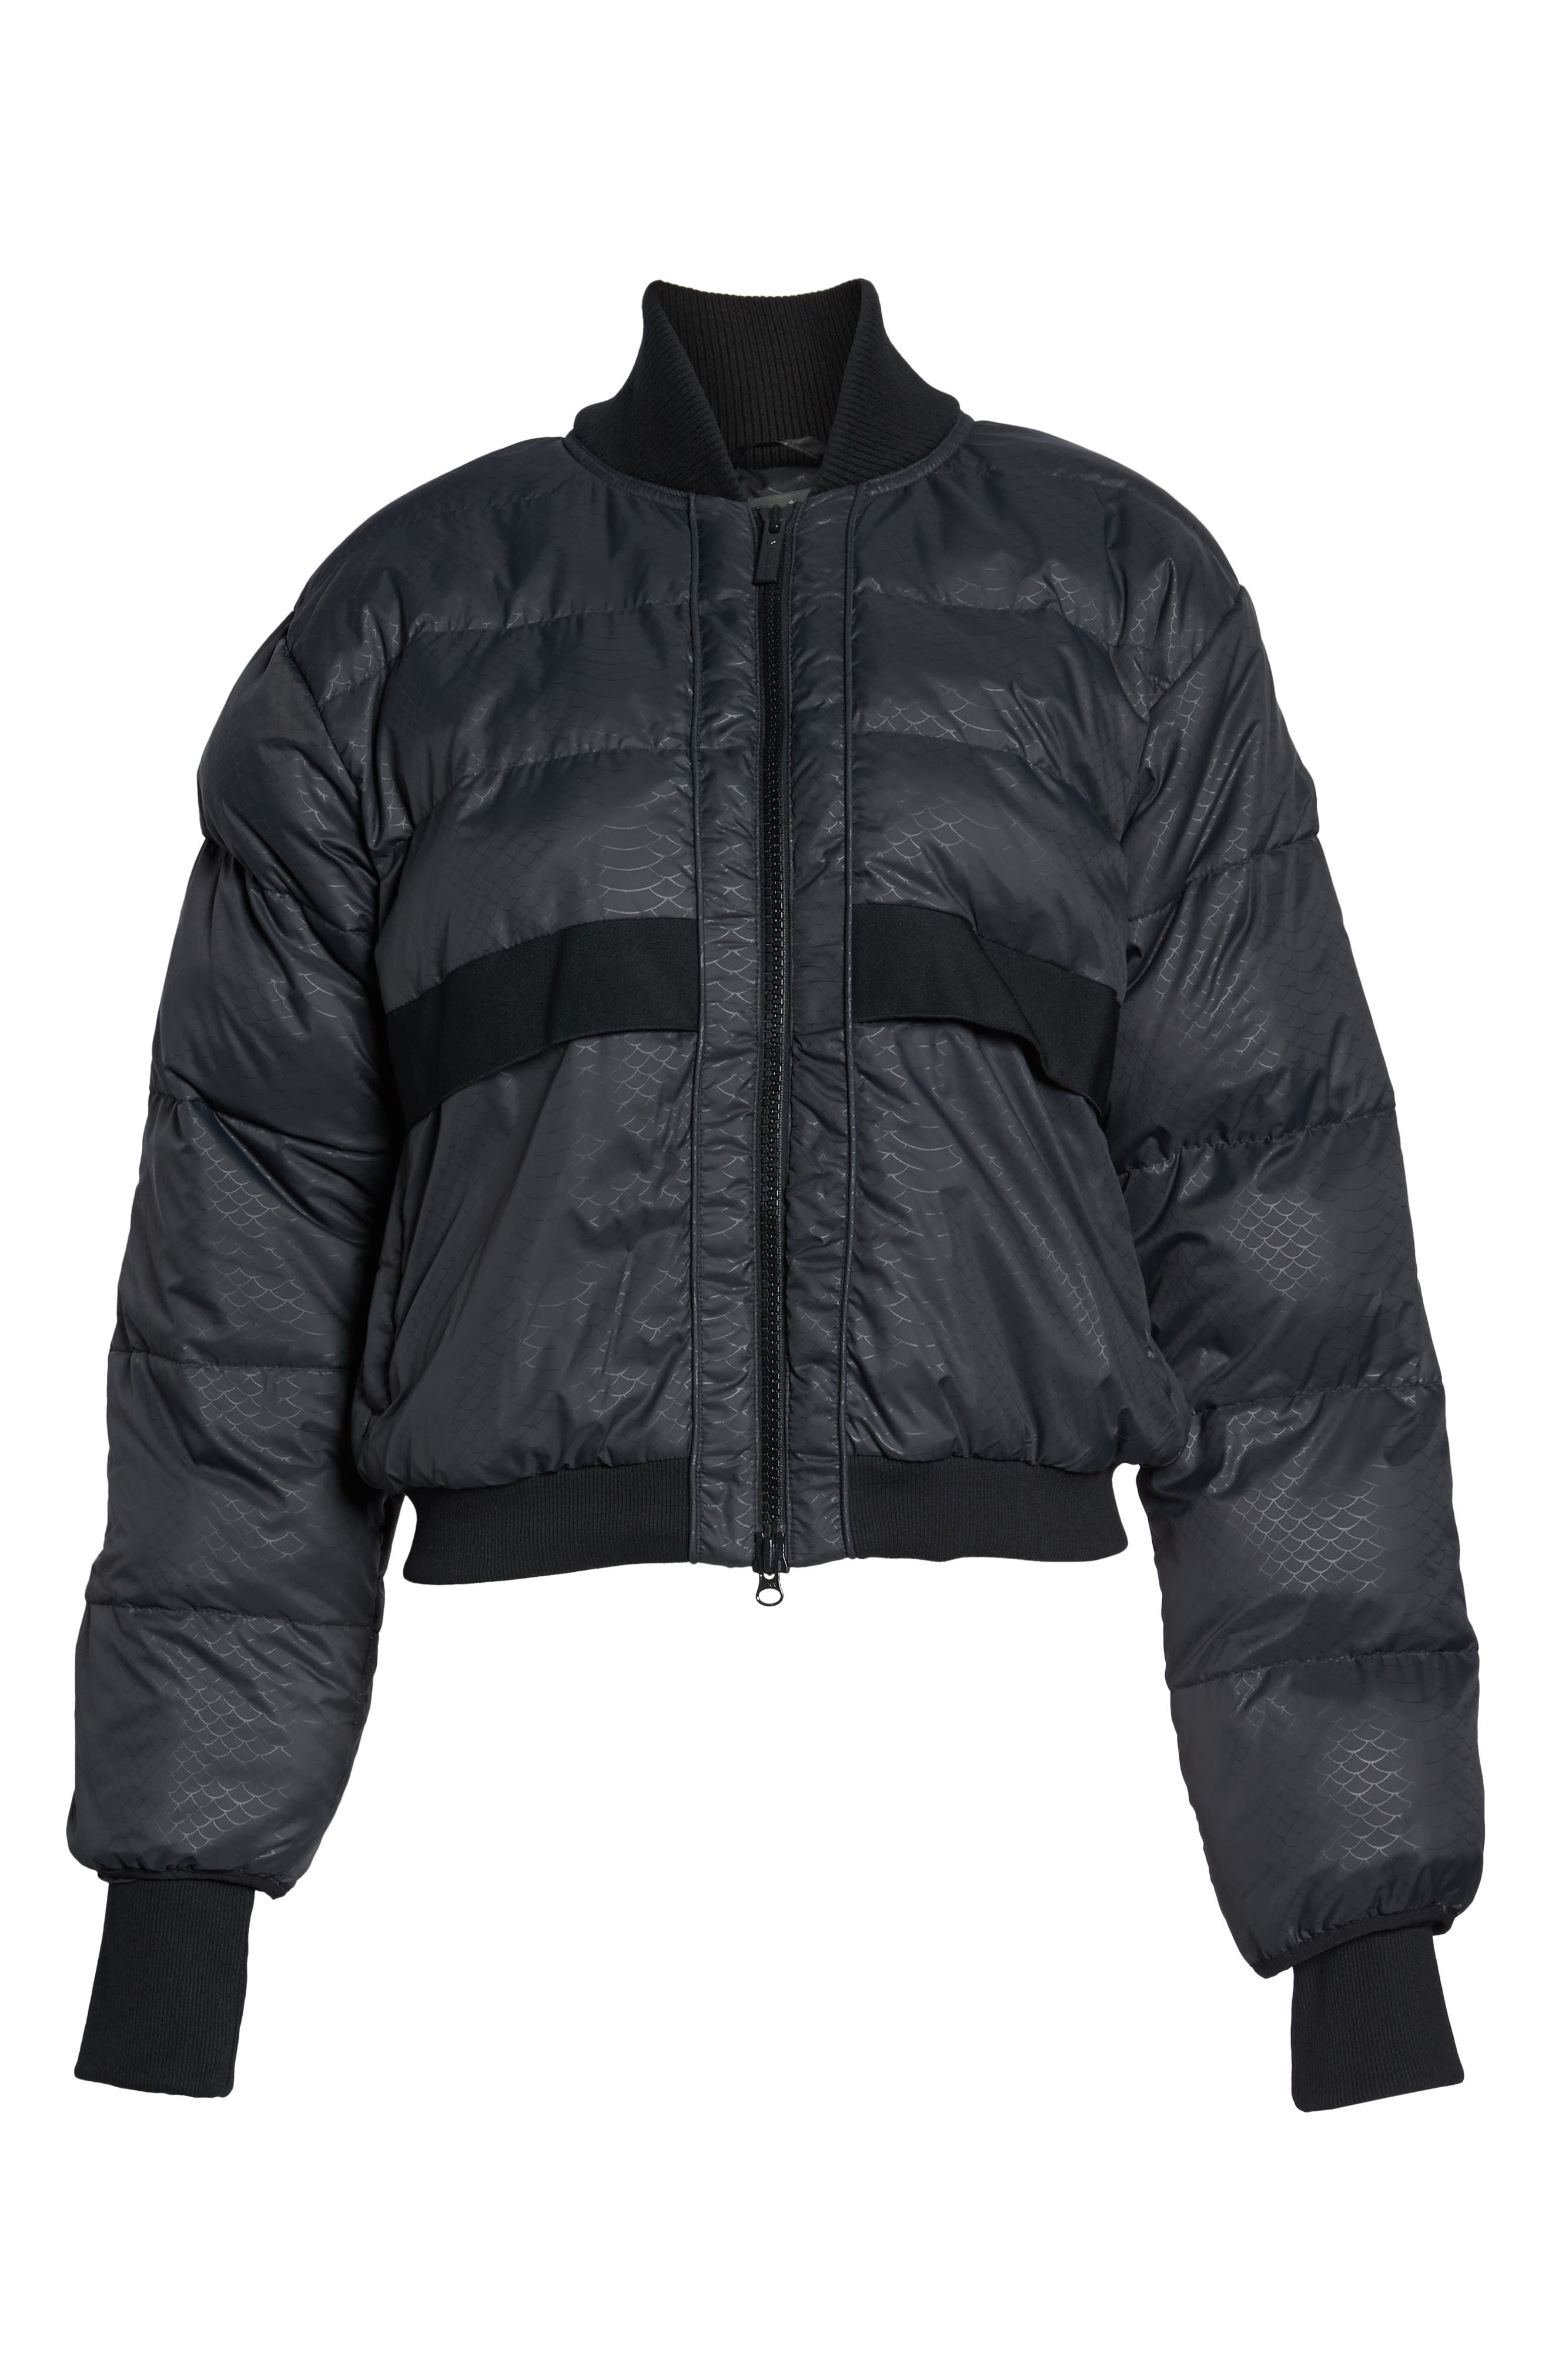 Crop Puffer Jacket,                             Alternate thumbnail 7, color,                             001